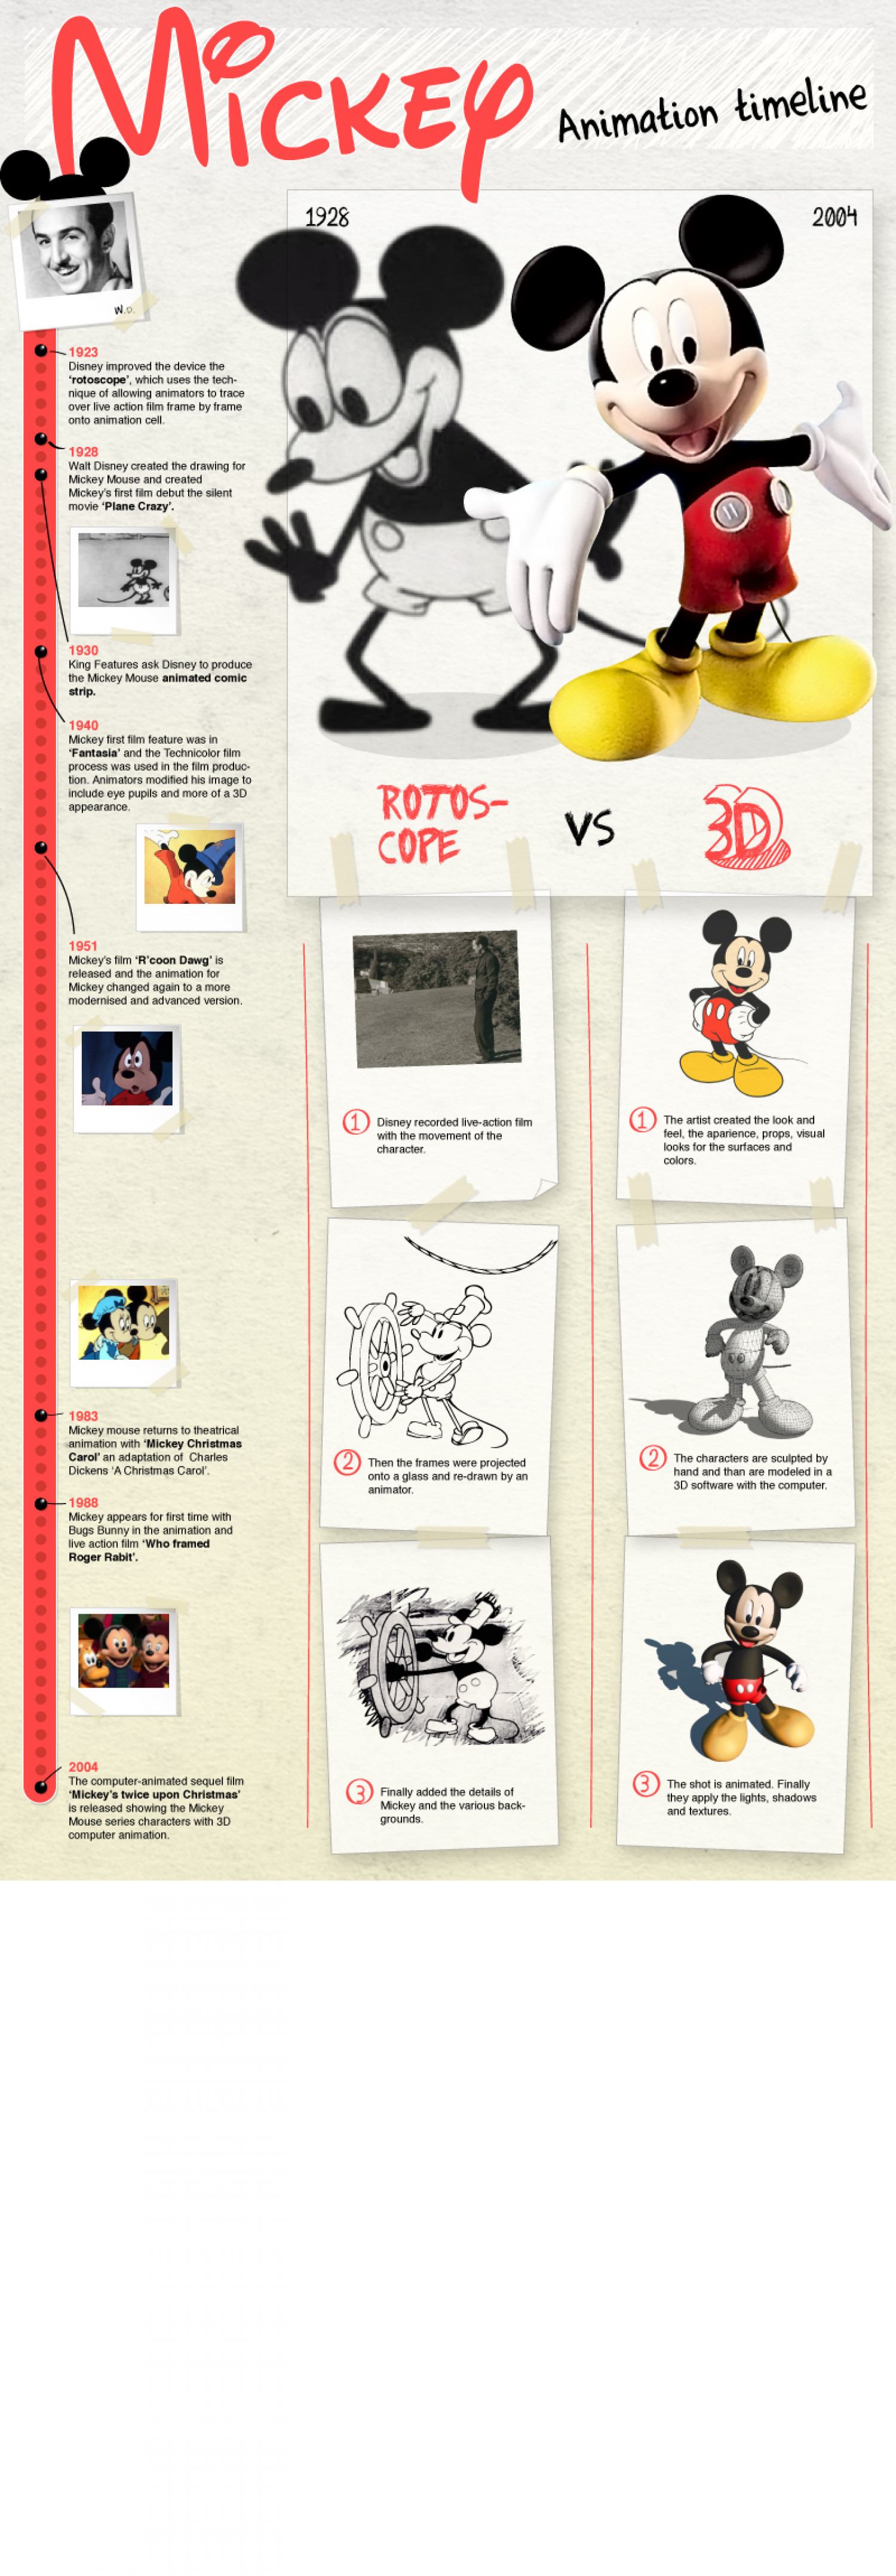 Mickey Mouse: The history of animation 3D | Visual.ly